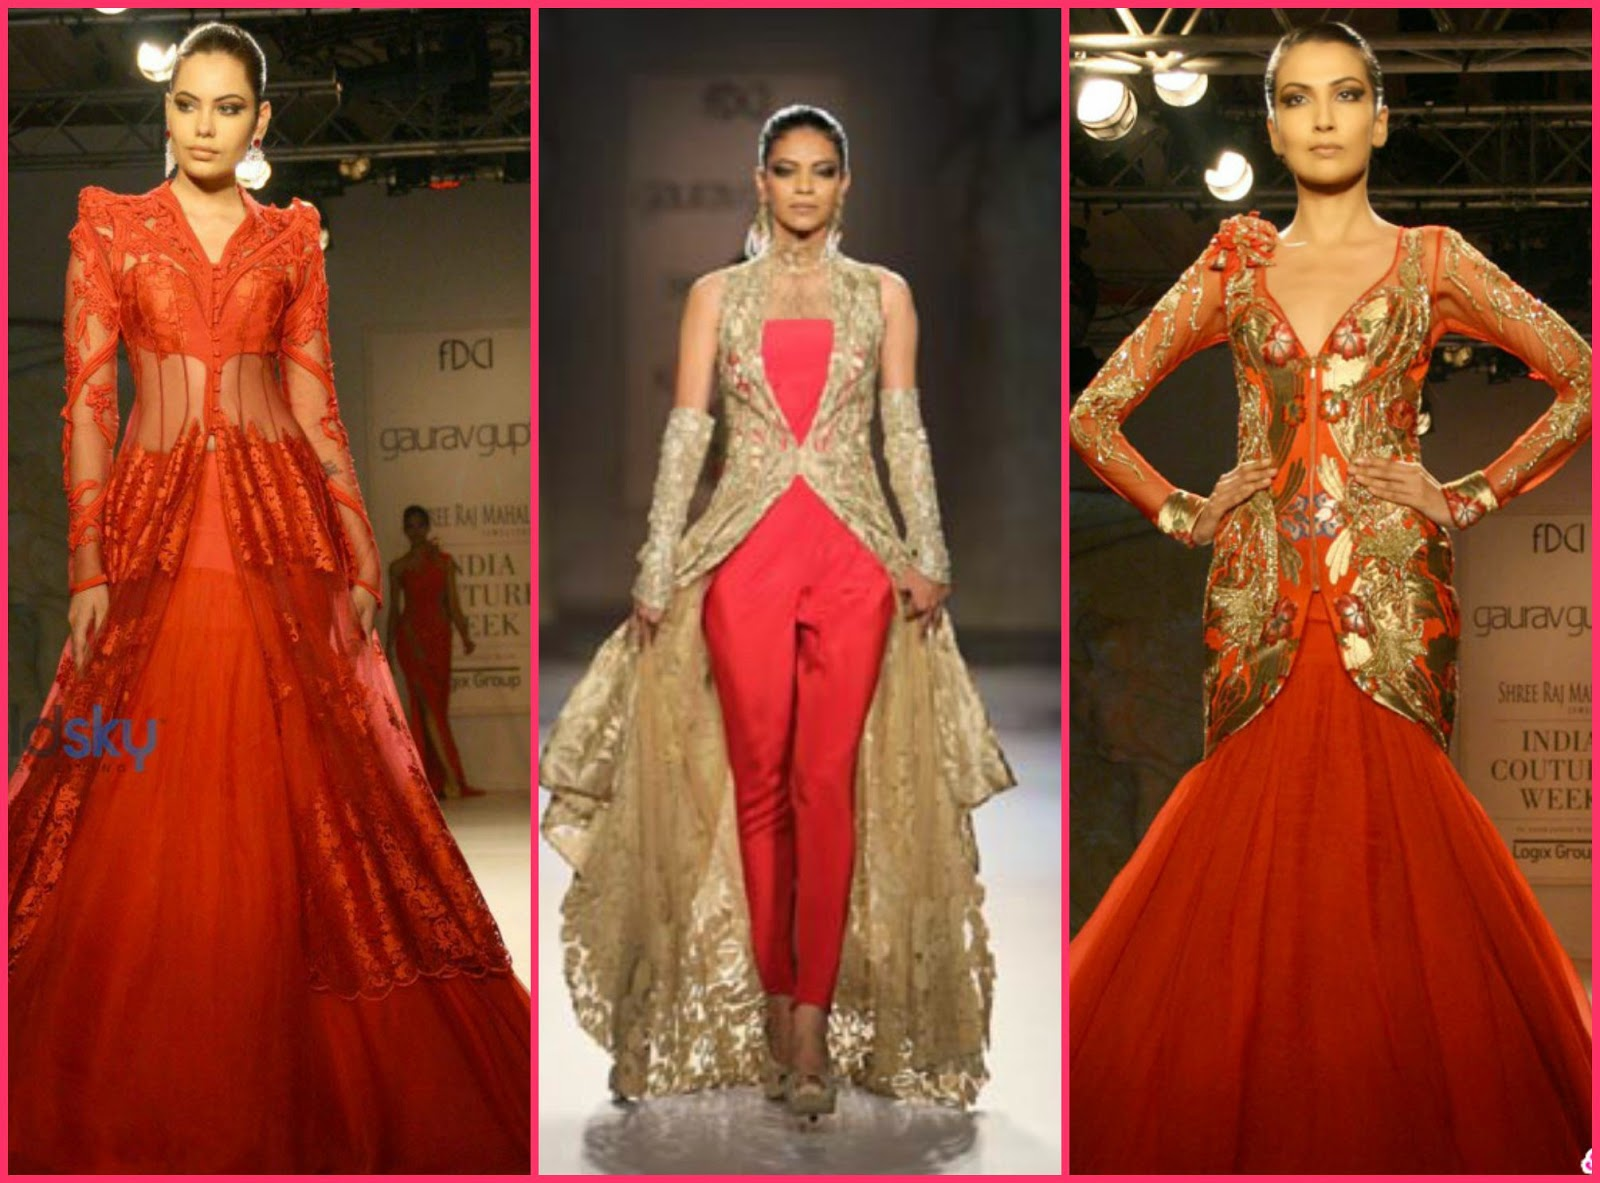 Gaurav gupta indian couture week 2014